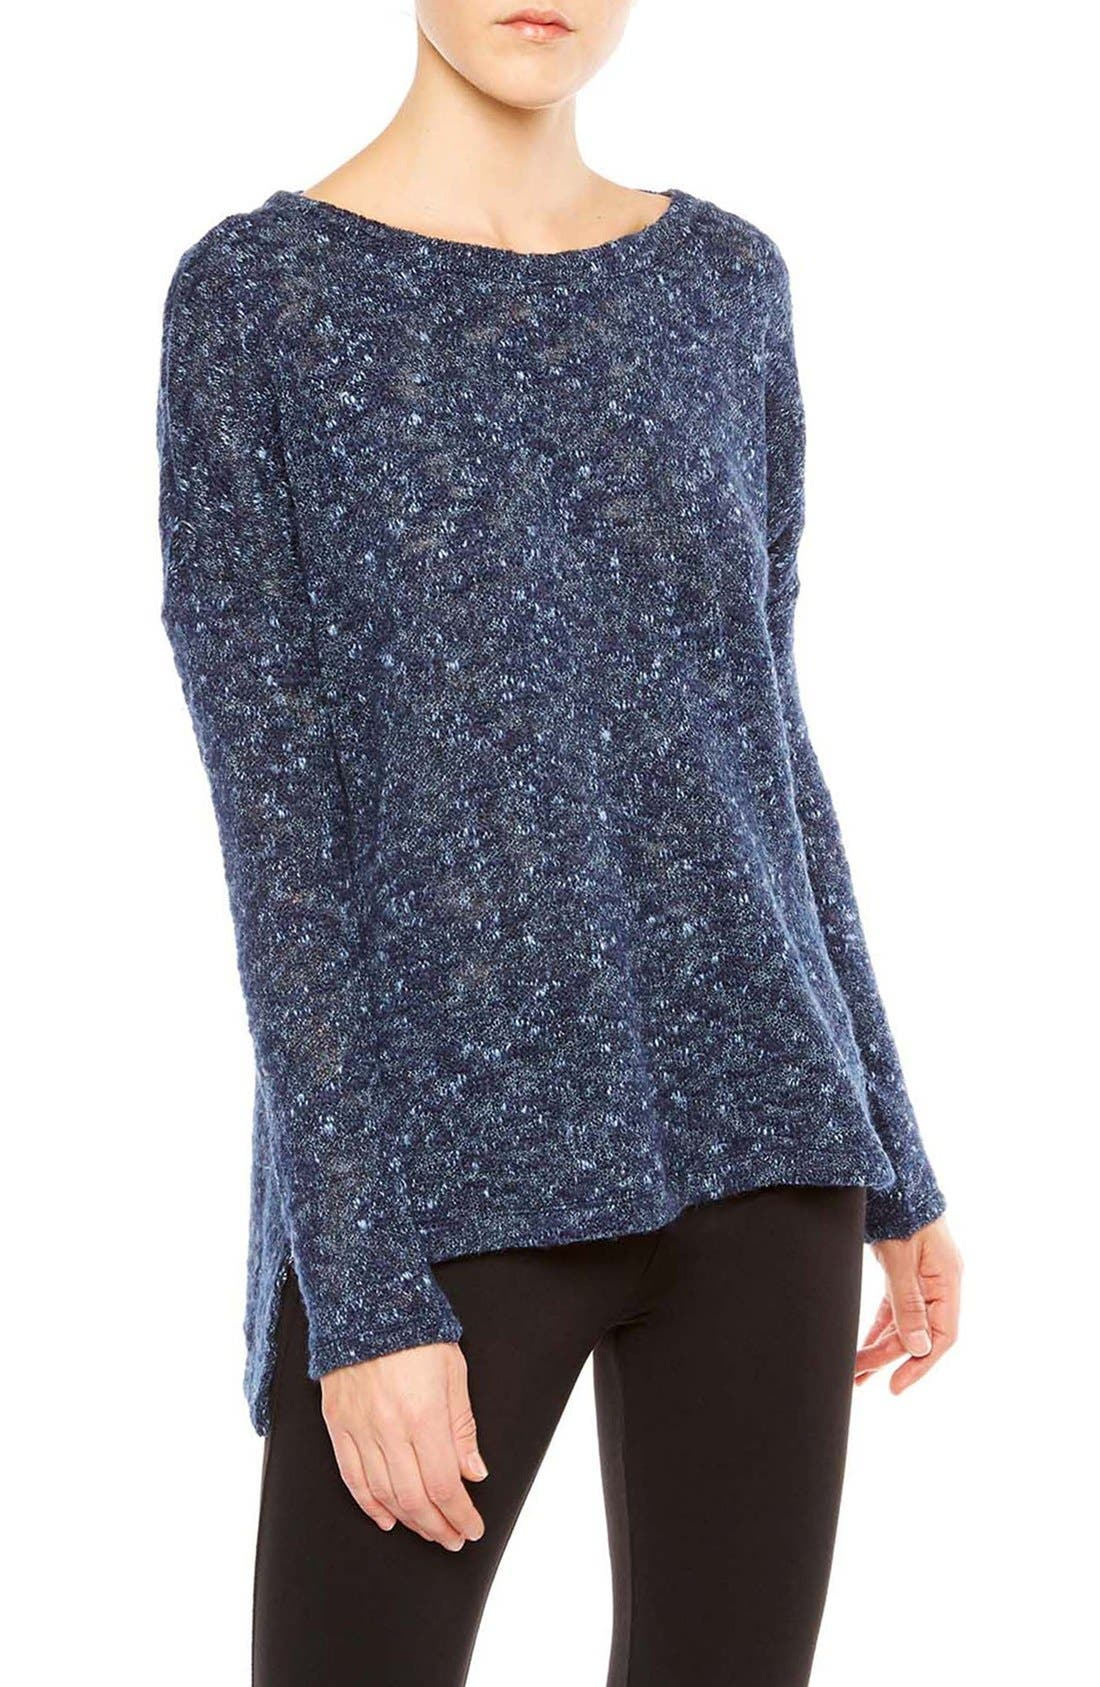 Main Image - Sanctuary 'Easy Street' High/Low Pullover